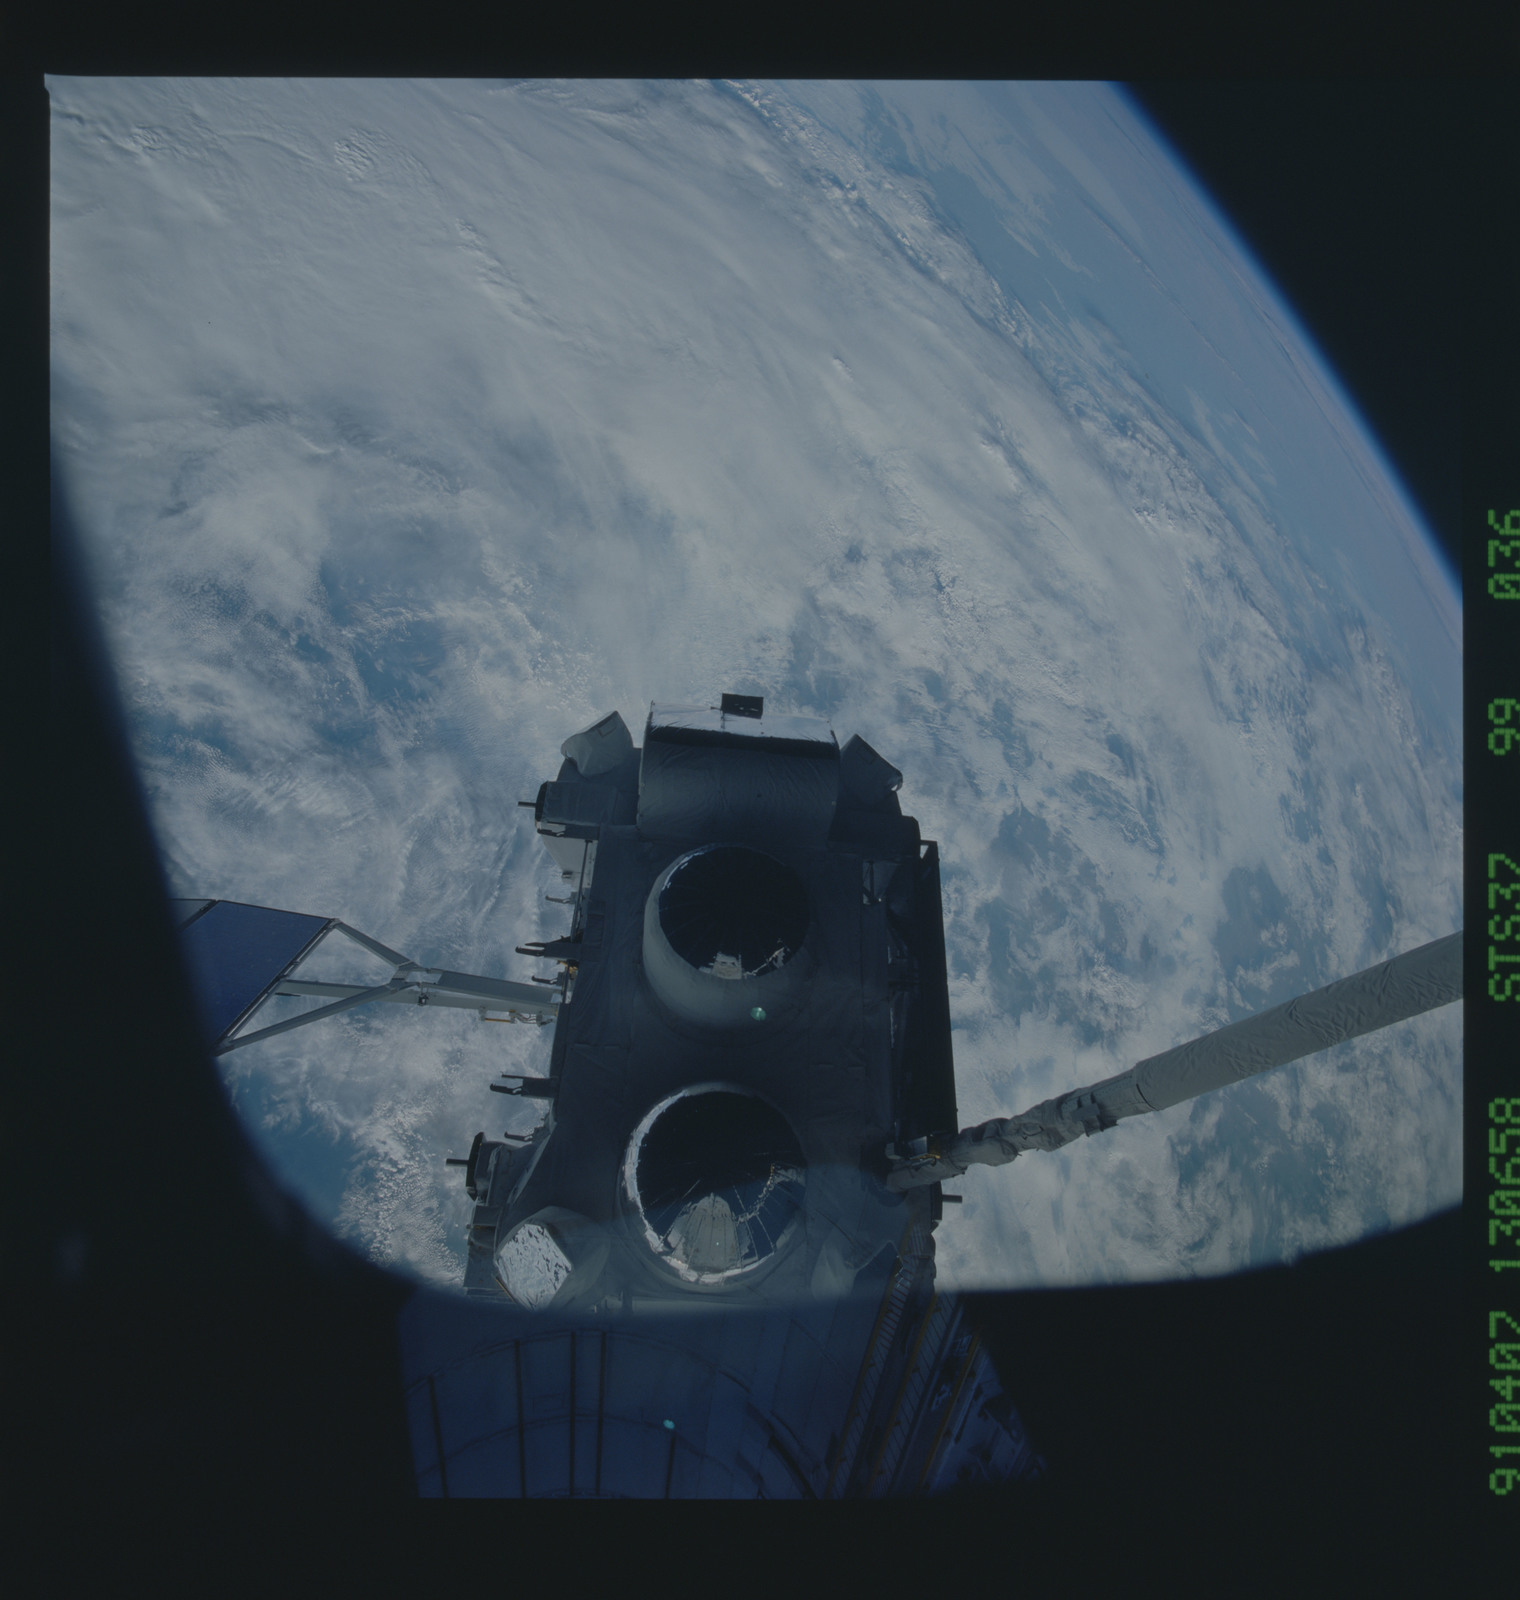 S37-99-036 - STS-037 - The Gamma Ray Observatory (GRO) grappled by the RMS during STS-37 deployment